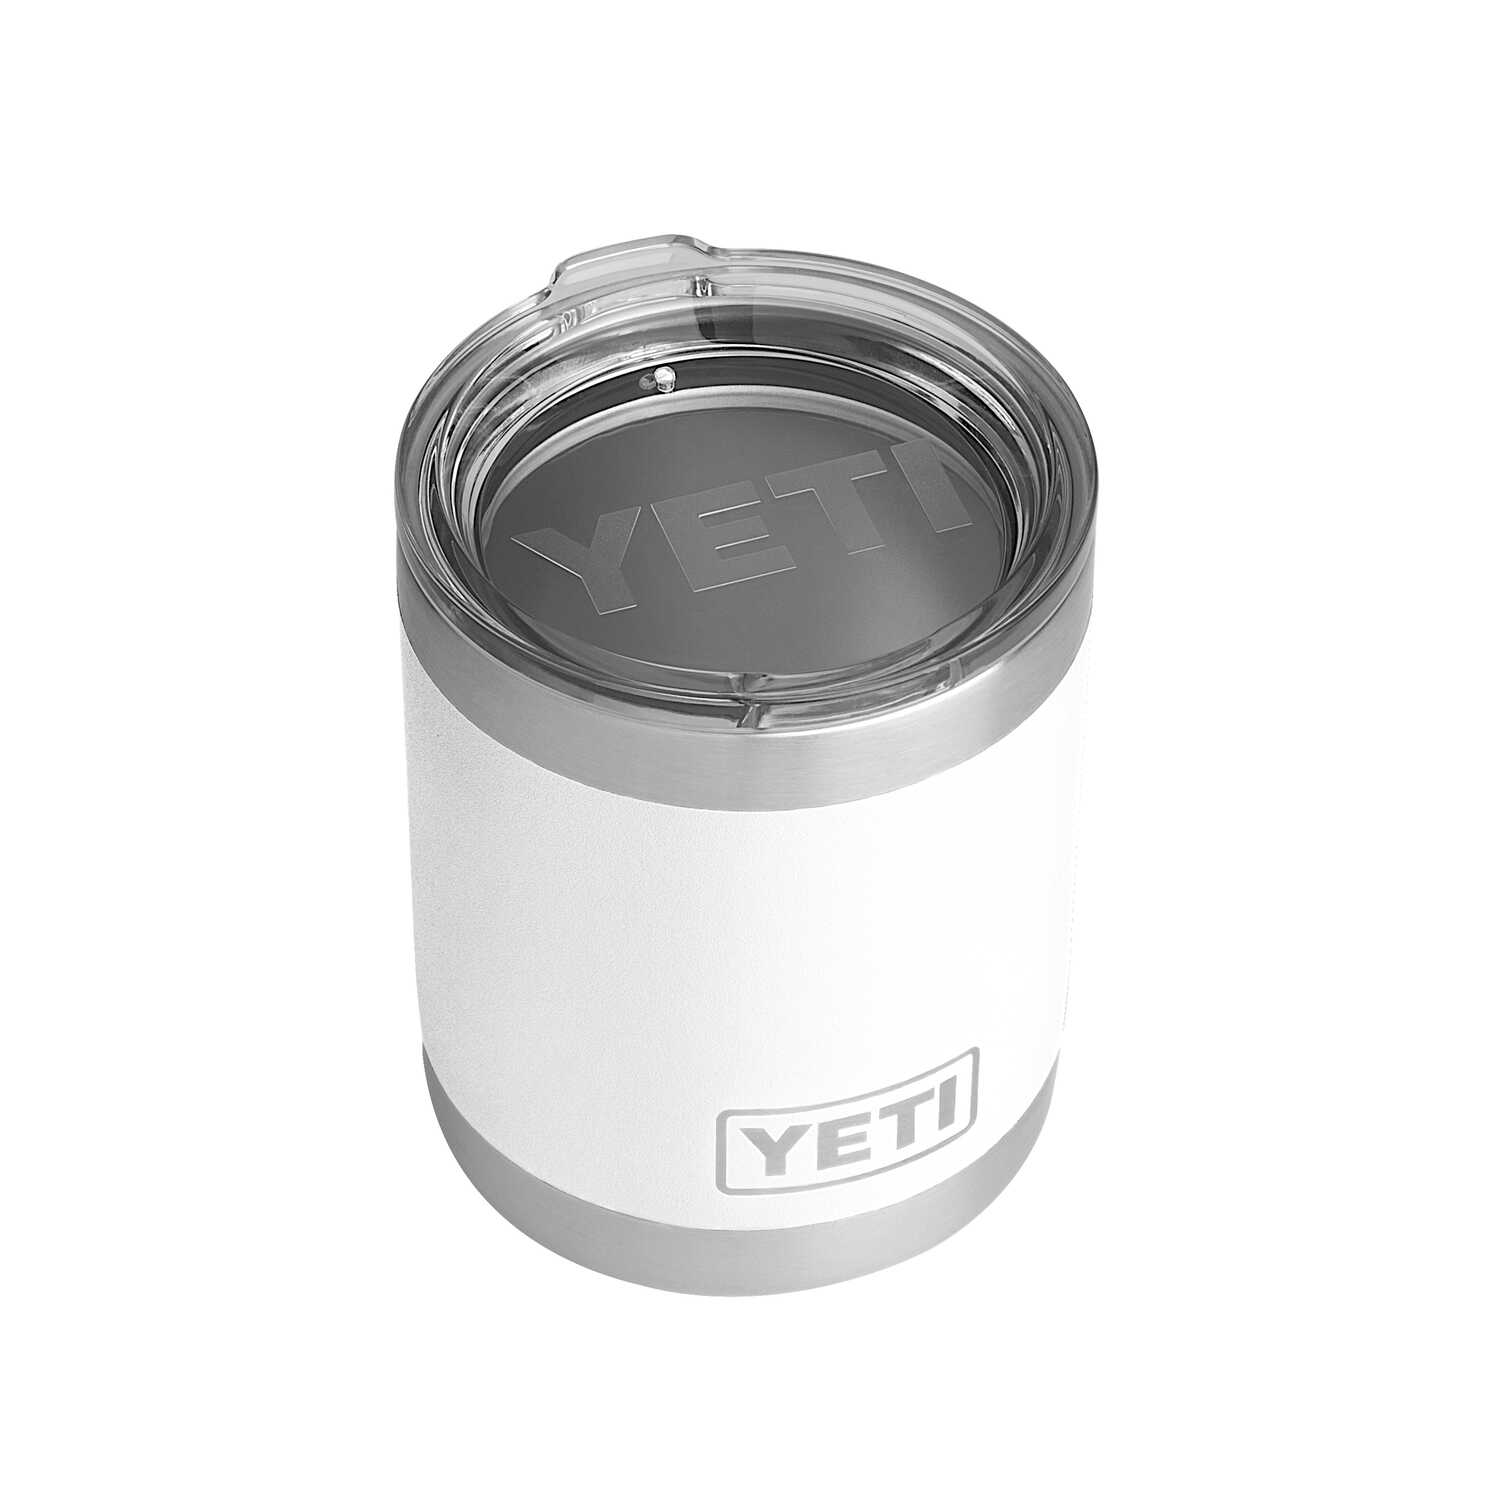 YETI  Rambler Lowball  White  Stainless Steel  Insulated Tumbler  BPA Free 10 oz.